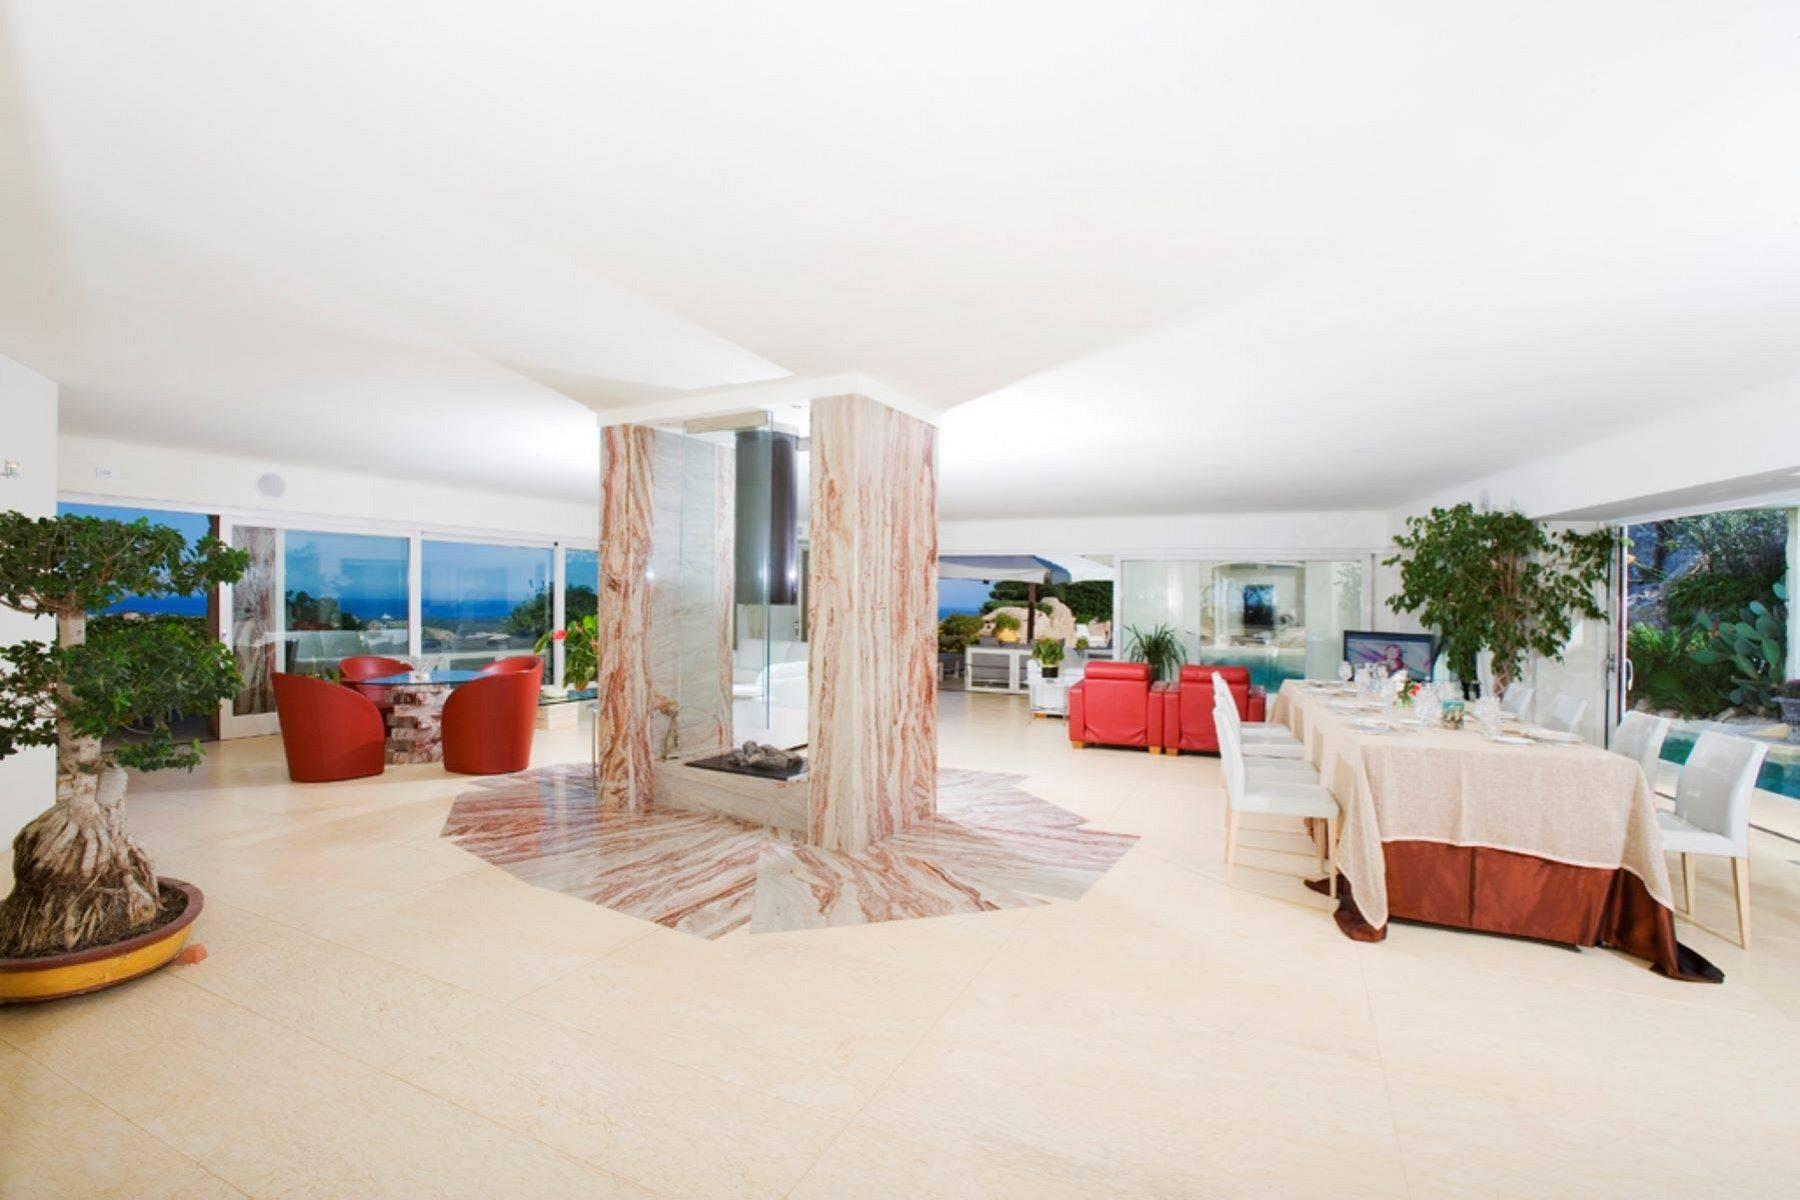 Exclusive property with stunning sea views overlooking the Costa Smeralda - 6